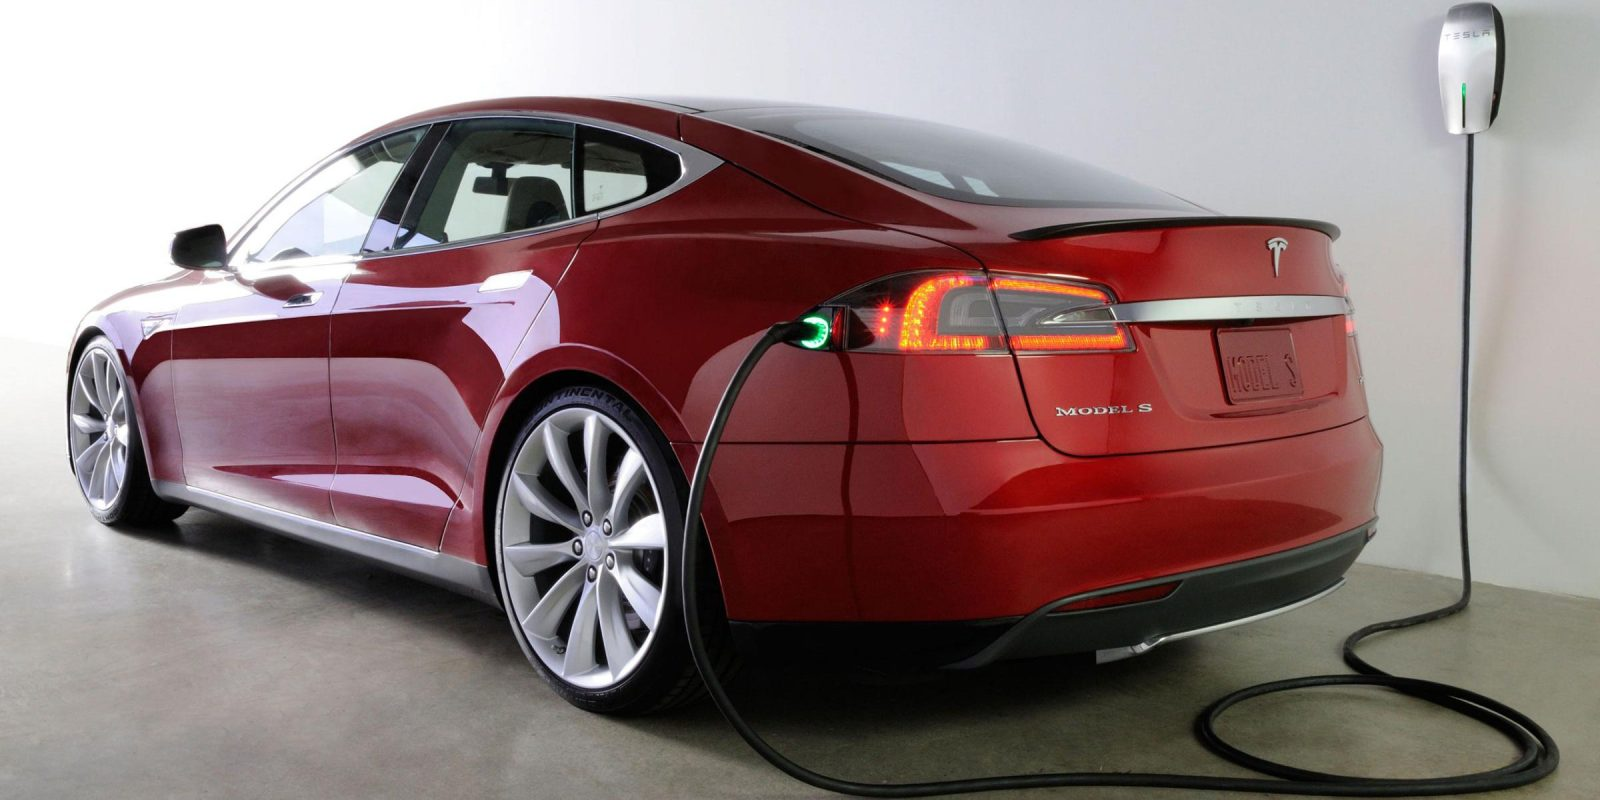 All new cars mandated to be electric in Germany by 2030 [Updated] - Electrek